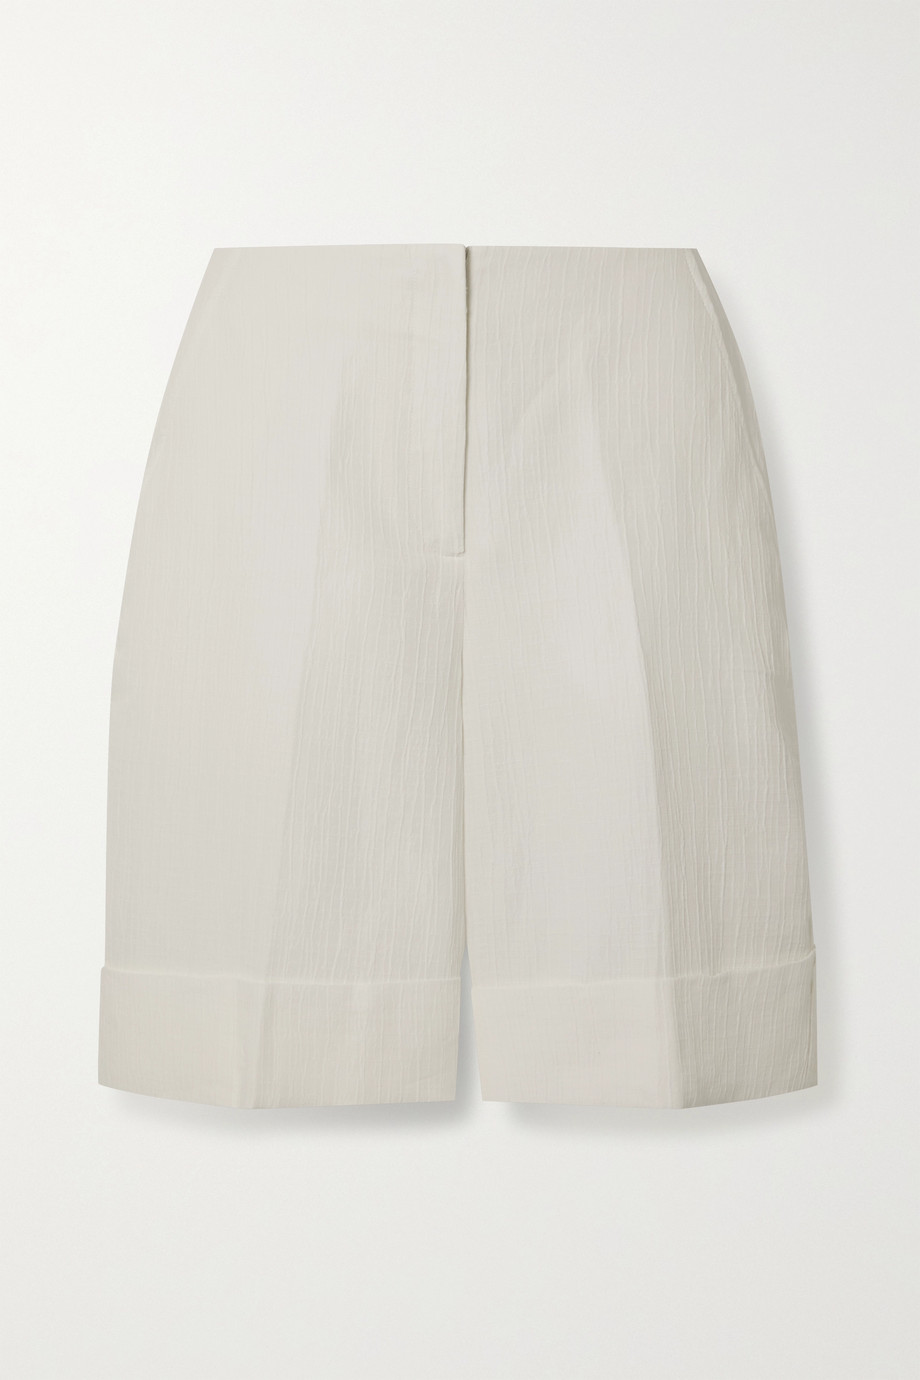 KING & TUCKFIELD Linen and cotton-blend jacquard shorts